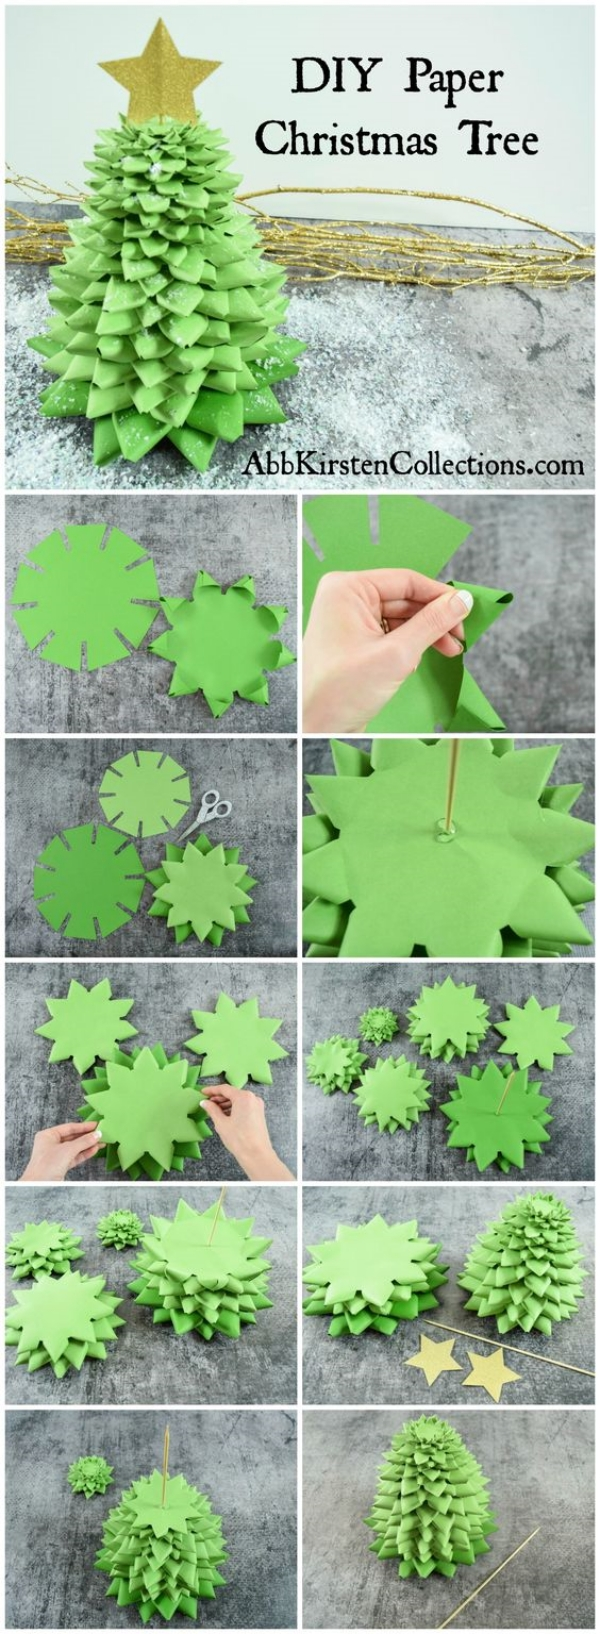 Easy-Peasy 7-minute (Or Less) DIY Paper Crafts for Kids to Try